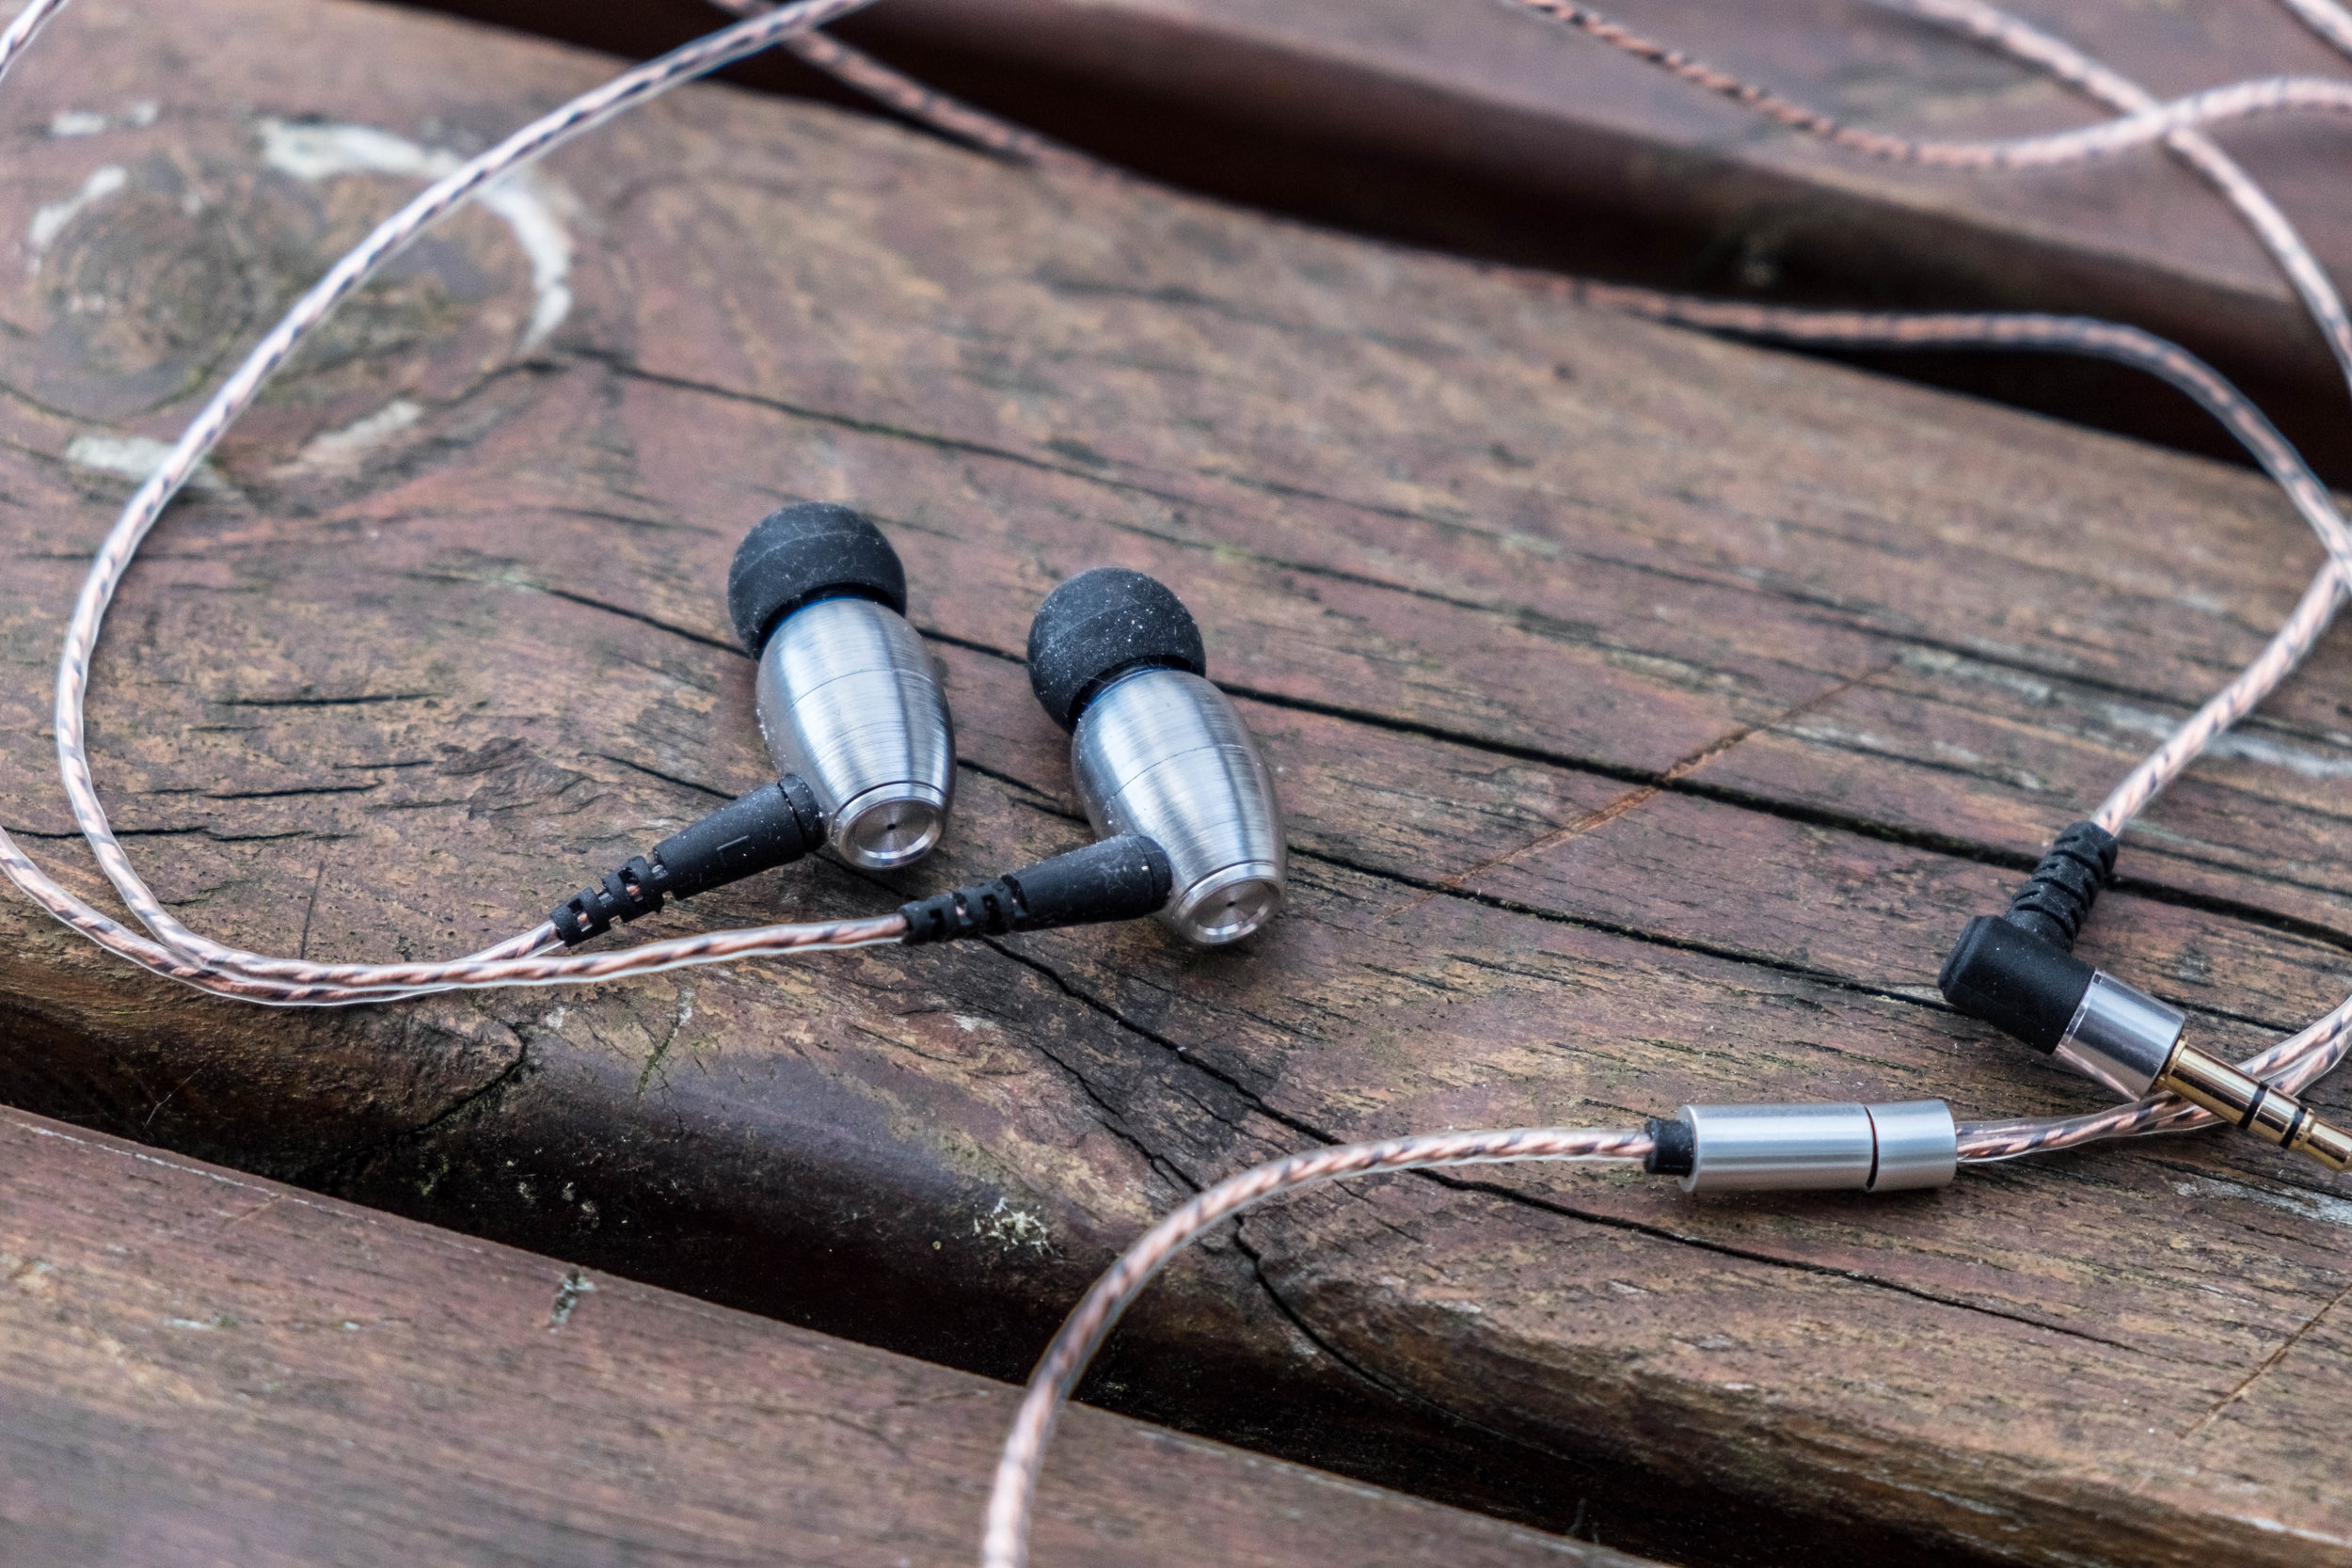 The Alpha and Delta AD01 earphone with right angle Jack and metal cable splitter.